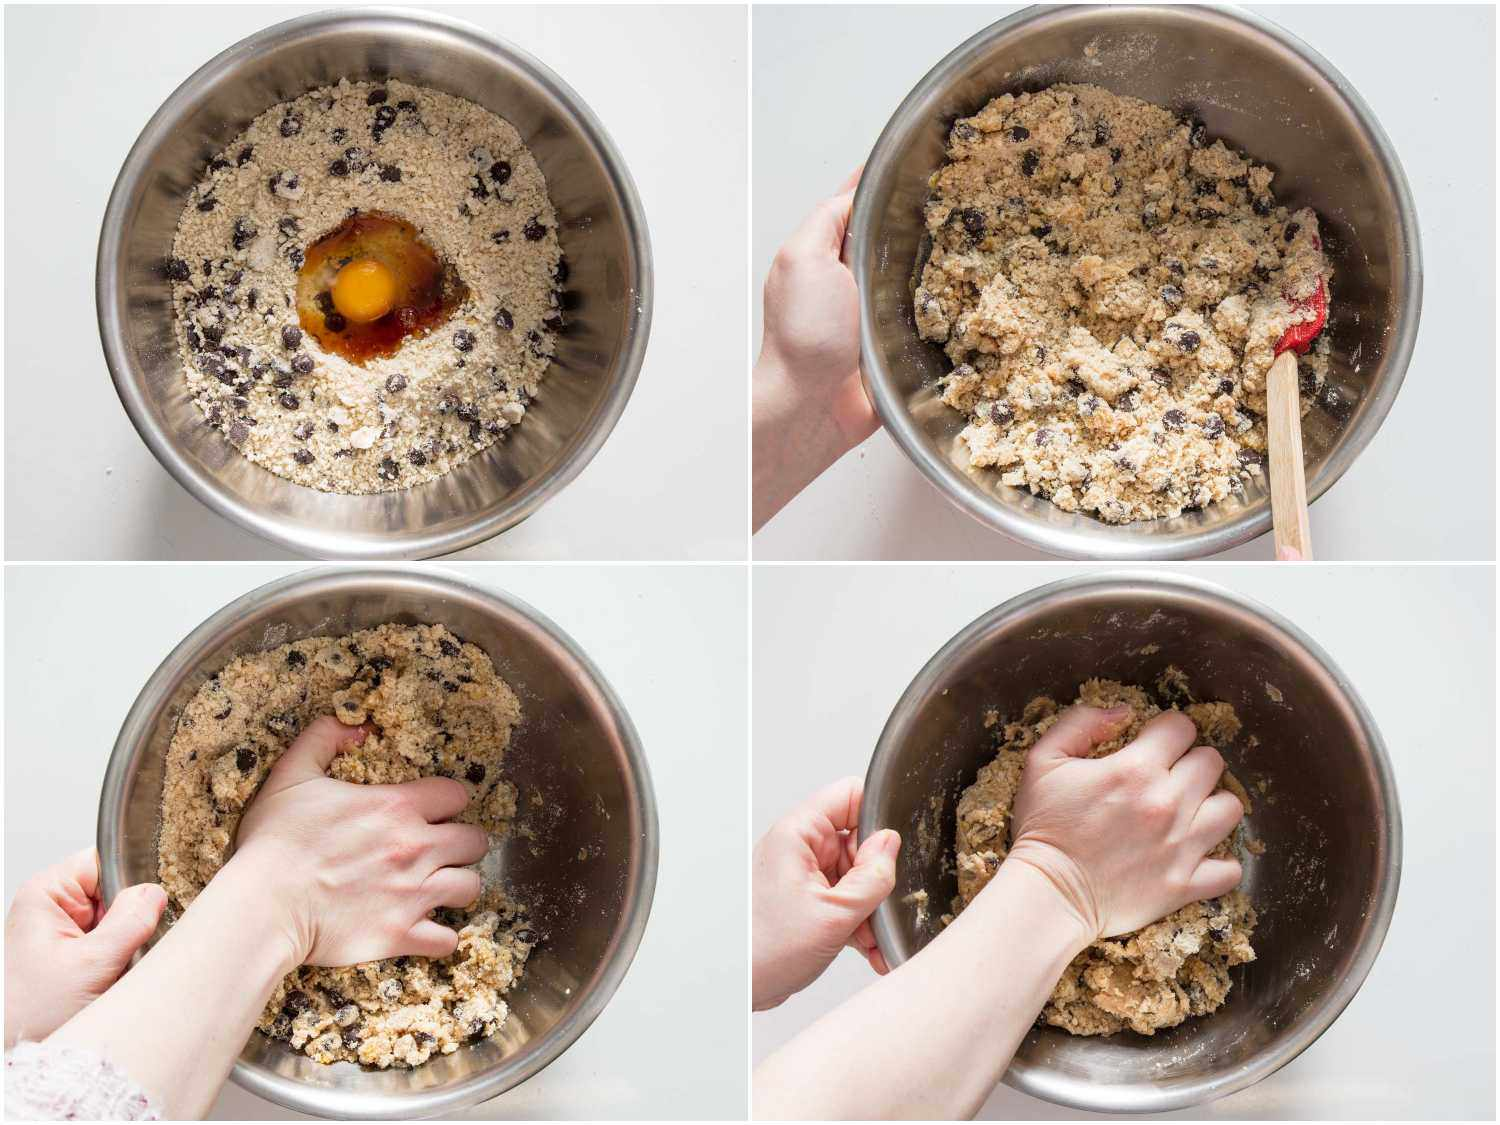 Collage of eggs and vanilla being added into chocolate chip cookie dry mix to form dough